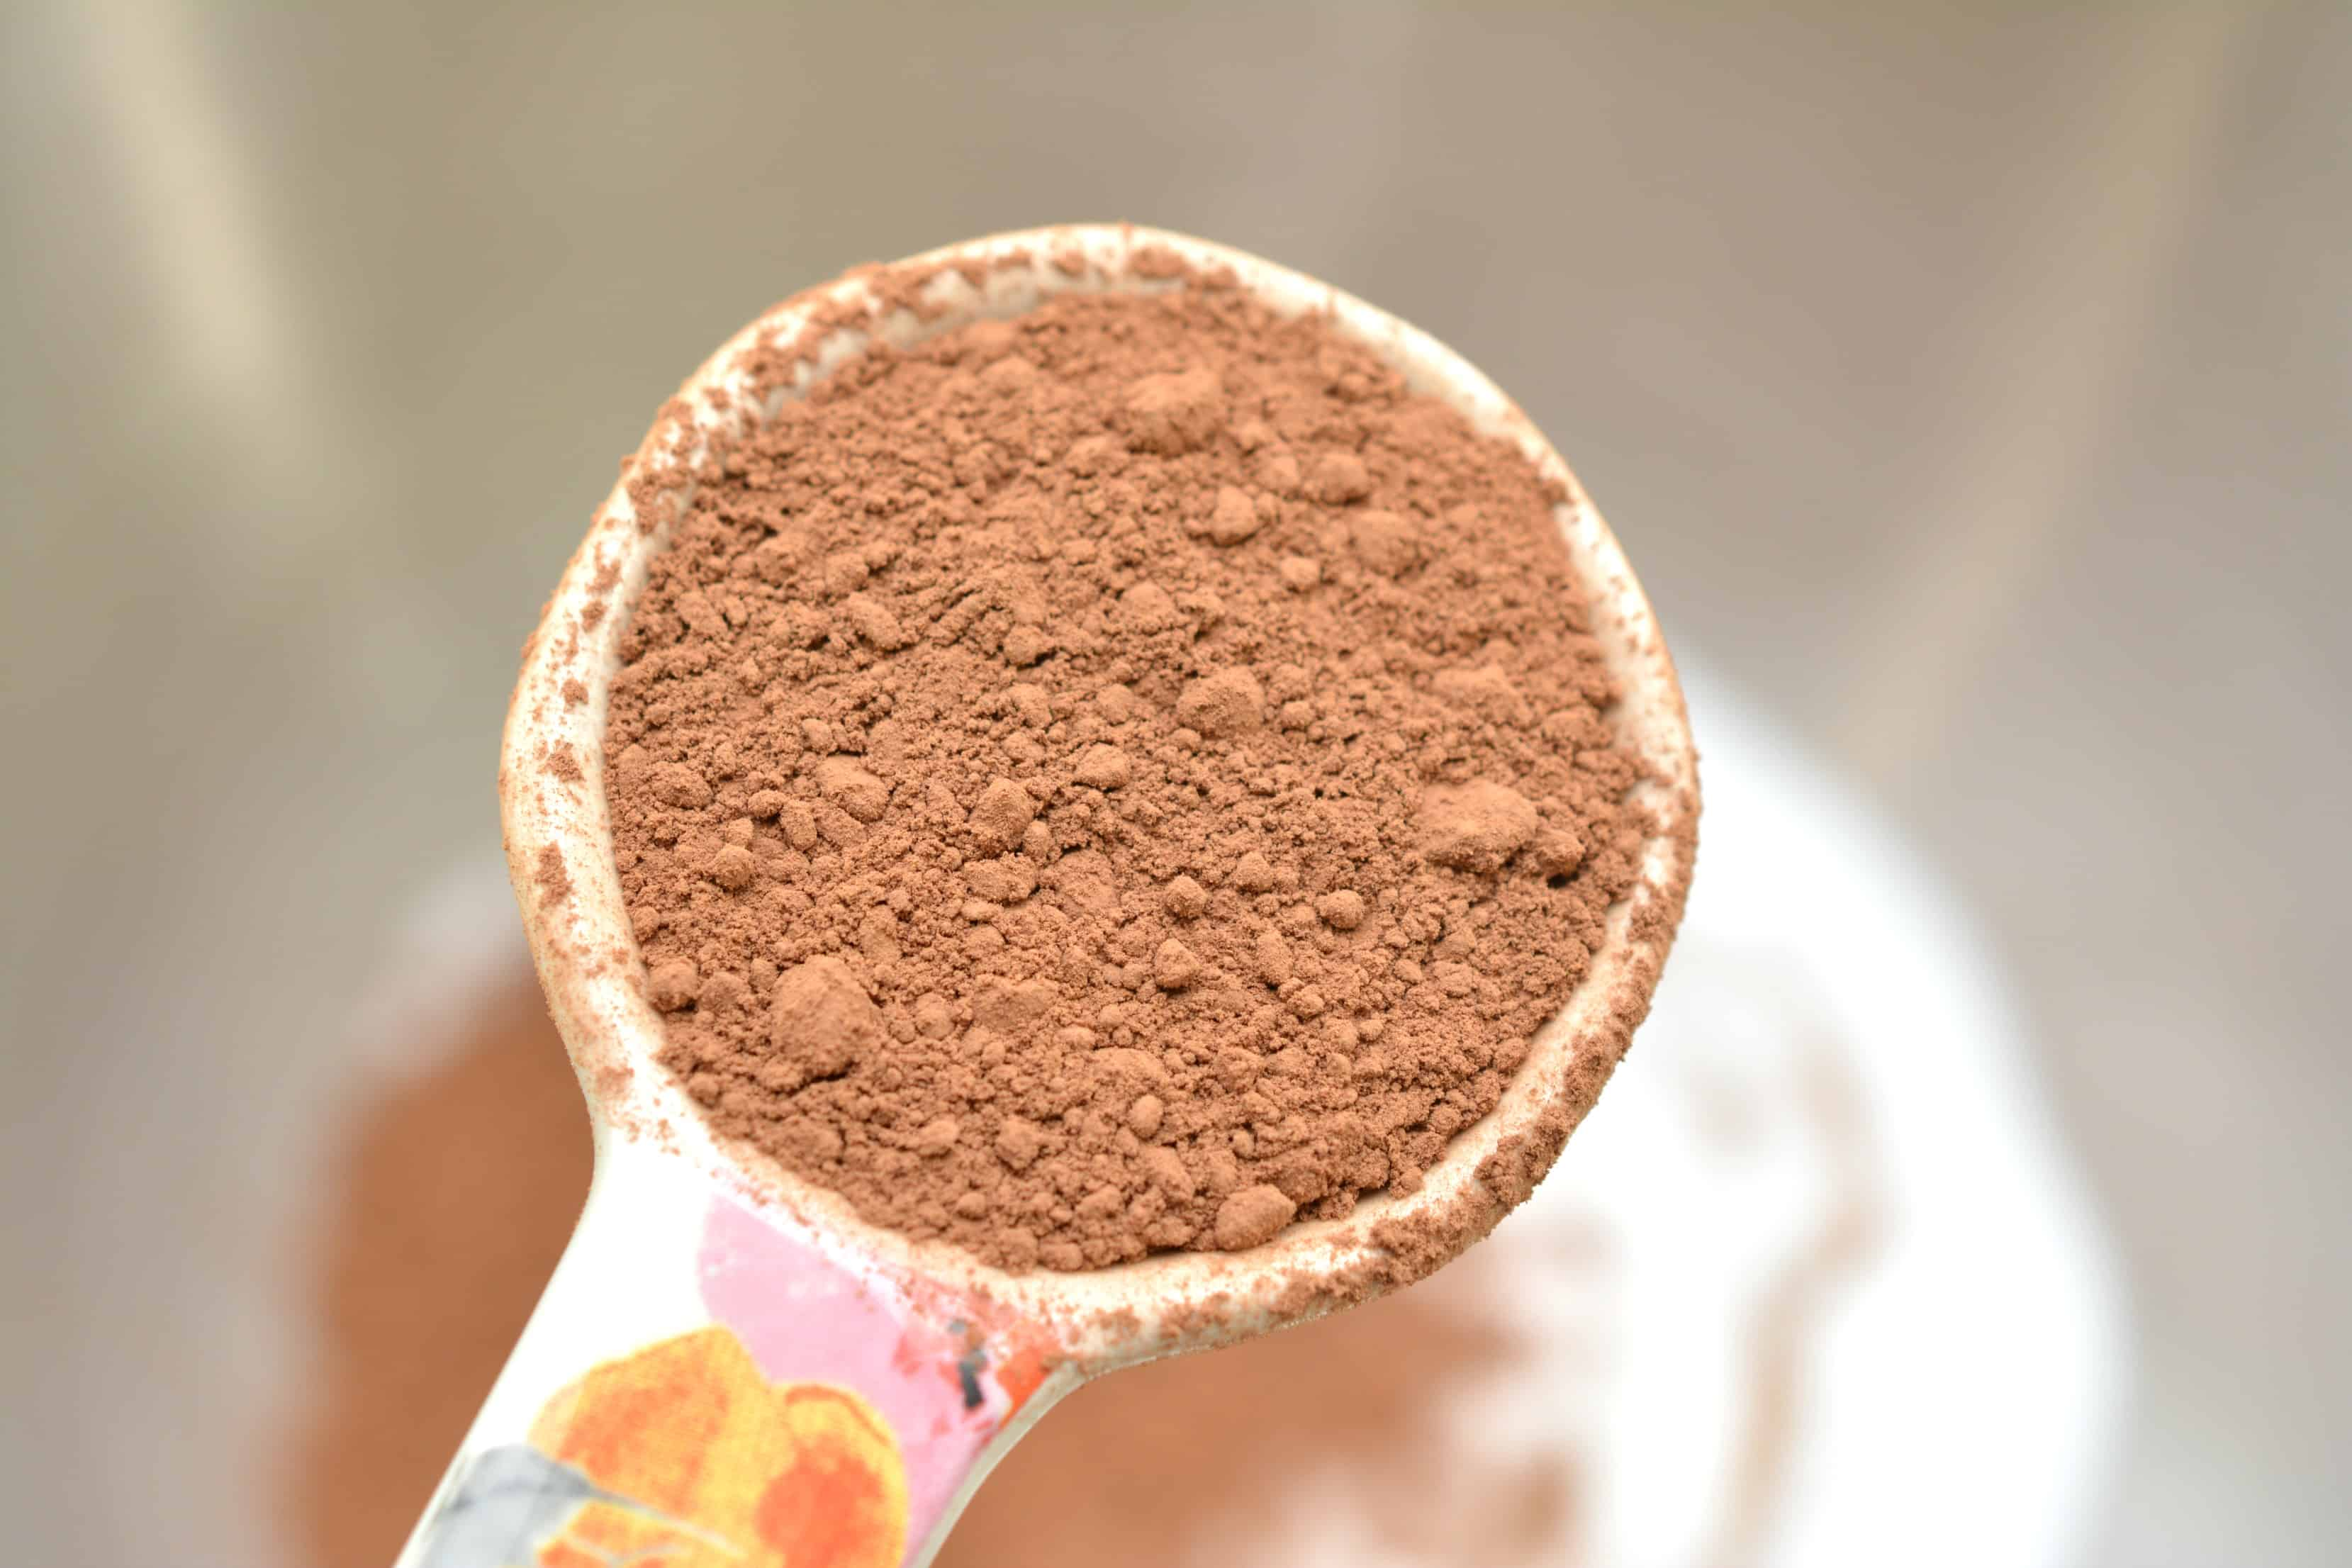 A close up of a person holding a cup of cocoa